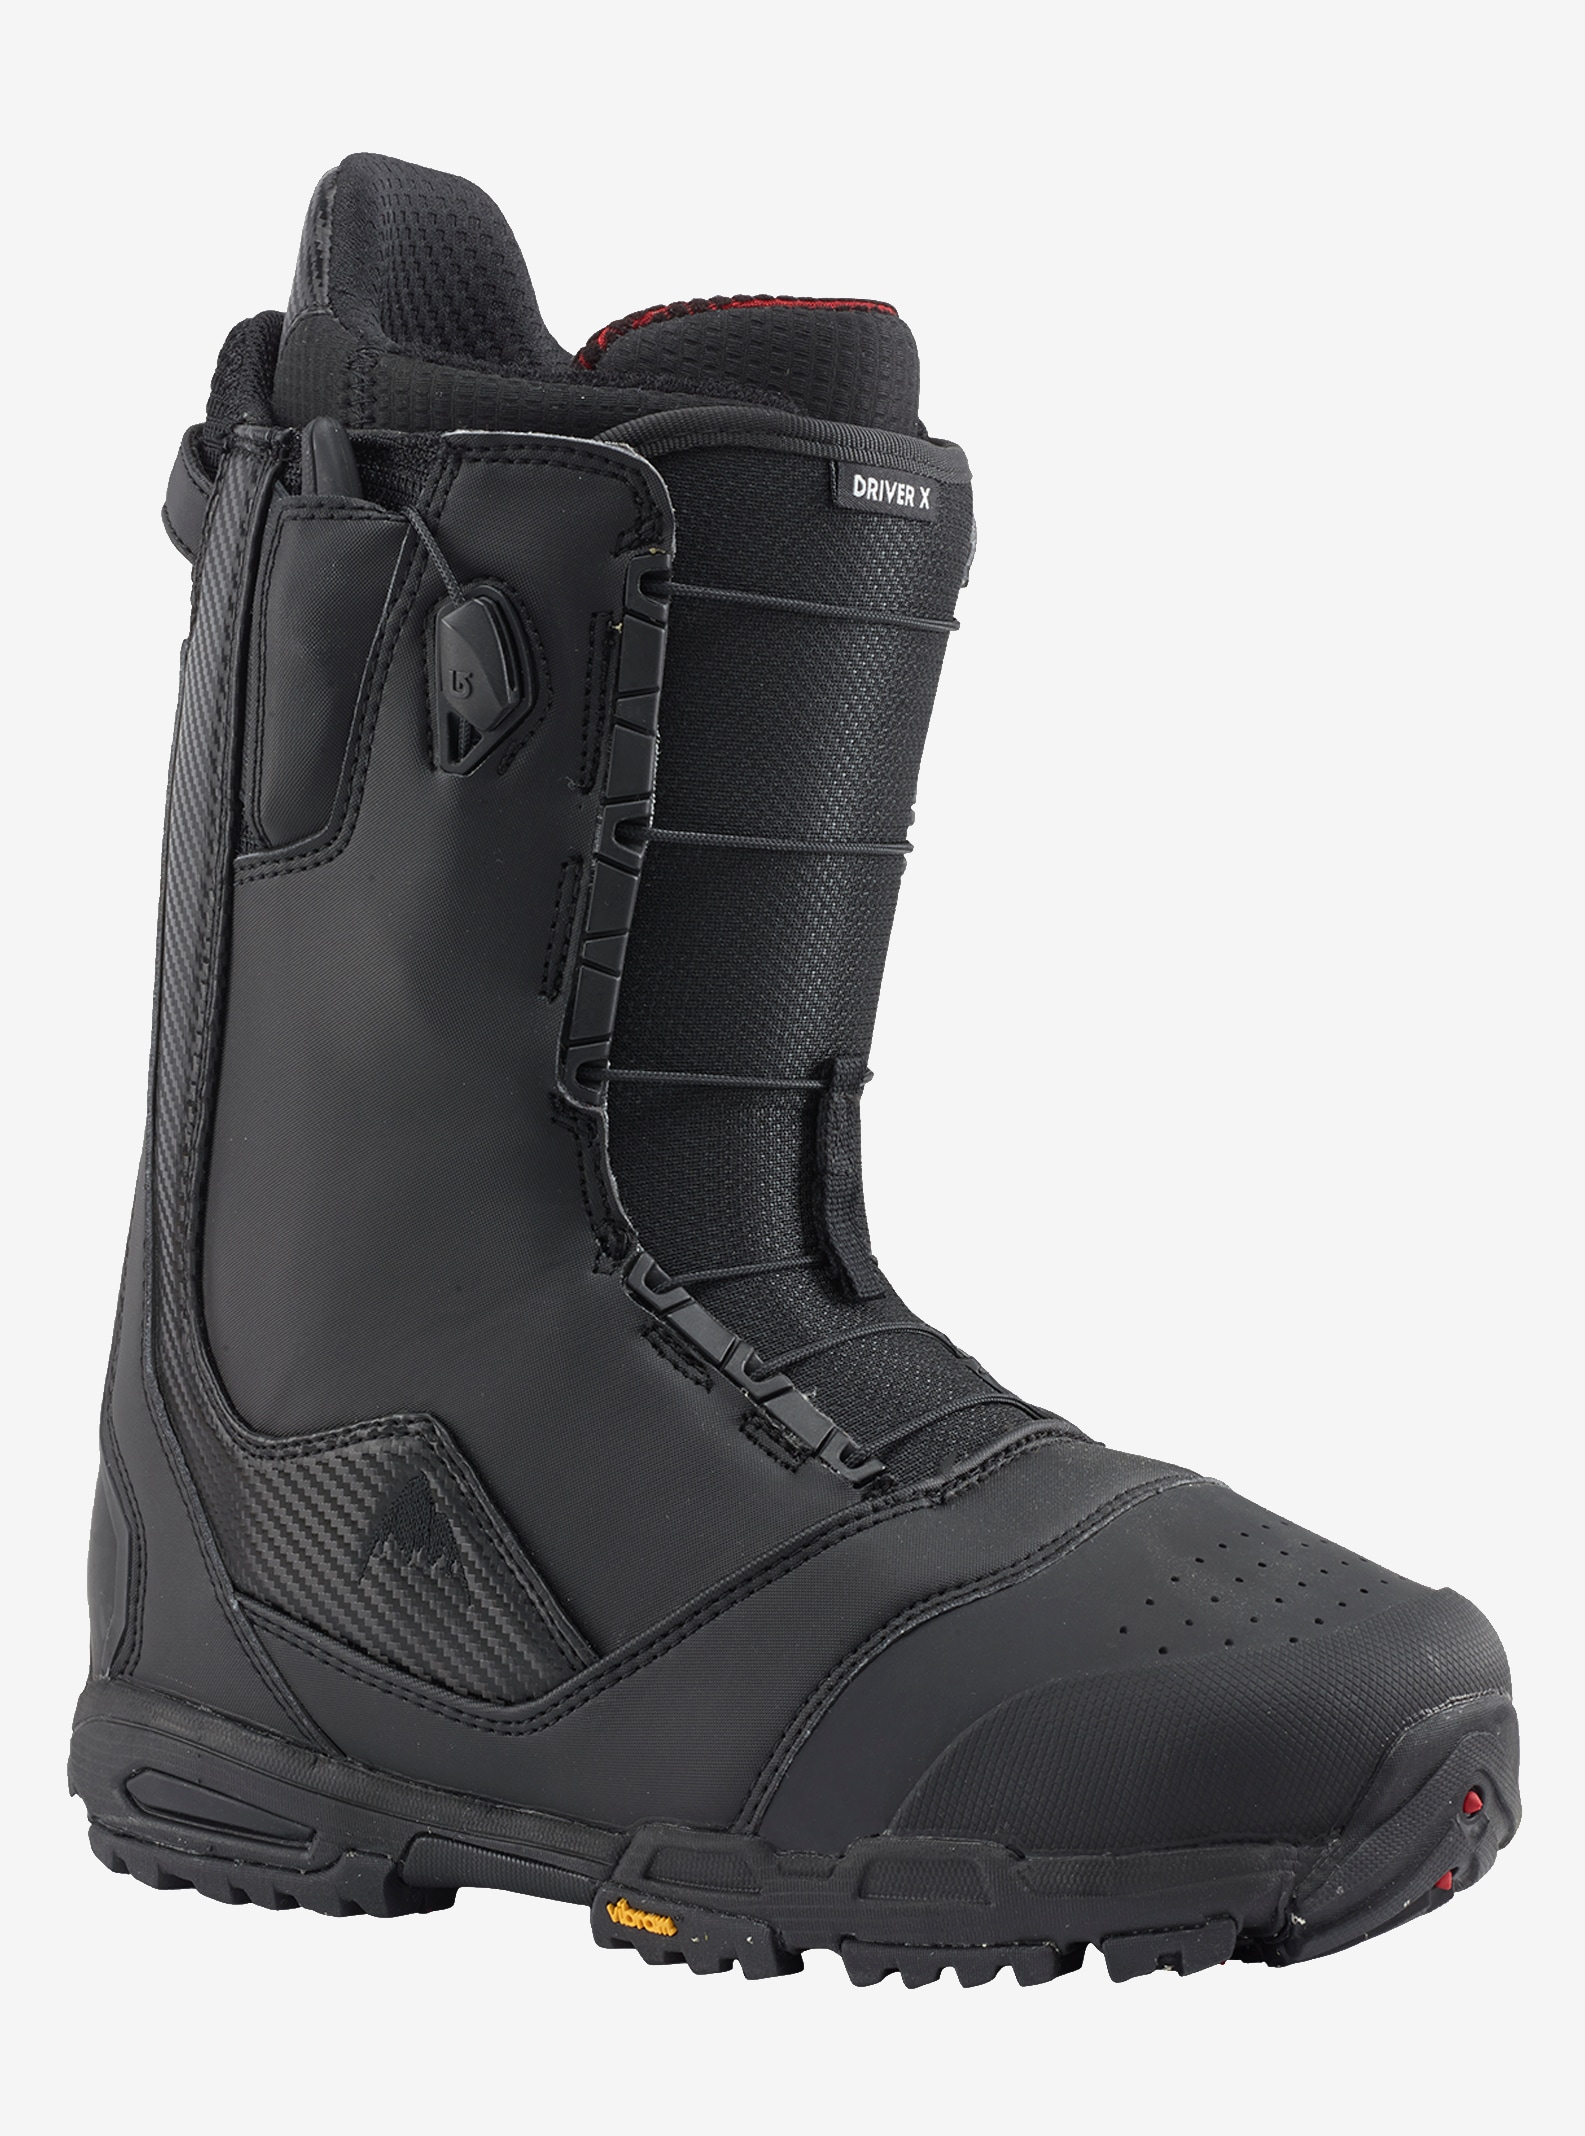 Men's Burton Driver X Snowboard Boot shown in Black